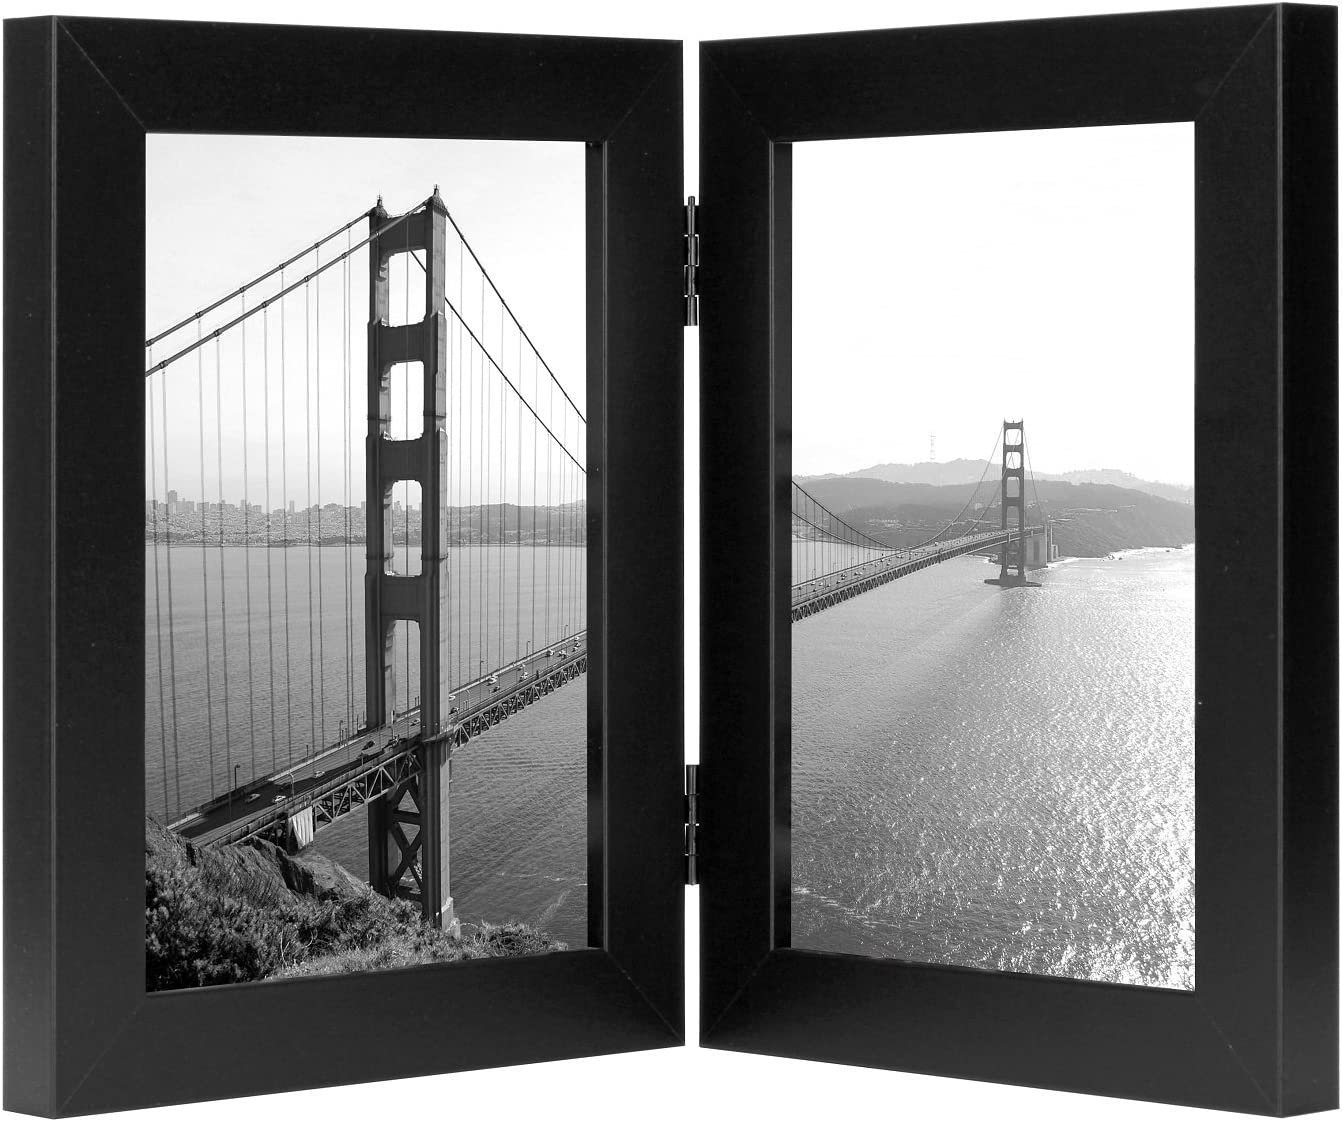 Frametory, 5x7 Inch Hinged Picture Frame - Displays Two 5x7 Inch Pictures, Stands Vertically on Desktop or Table Top (5x7 Double, Black)